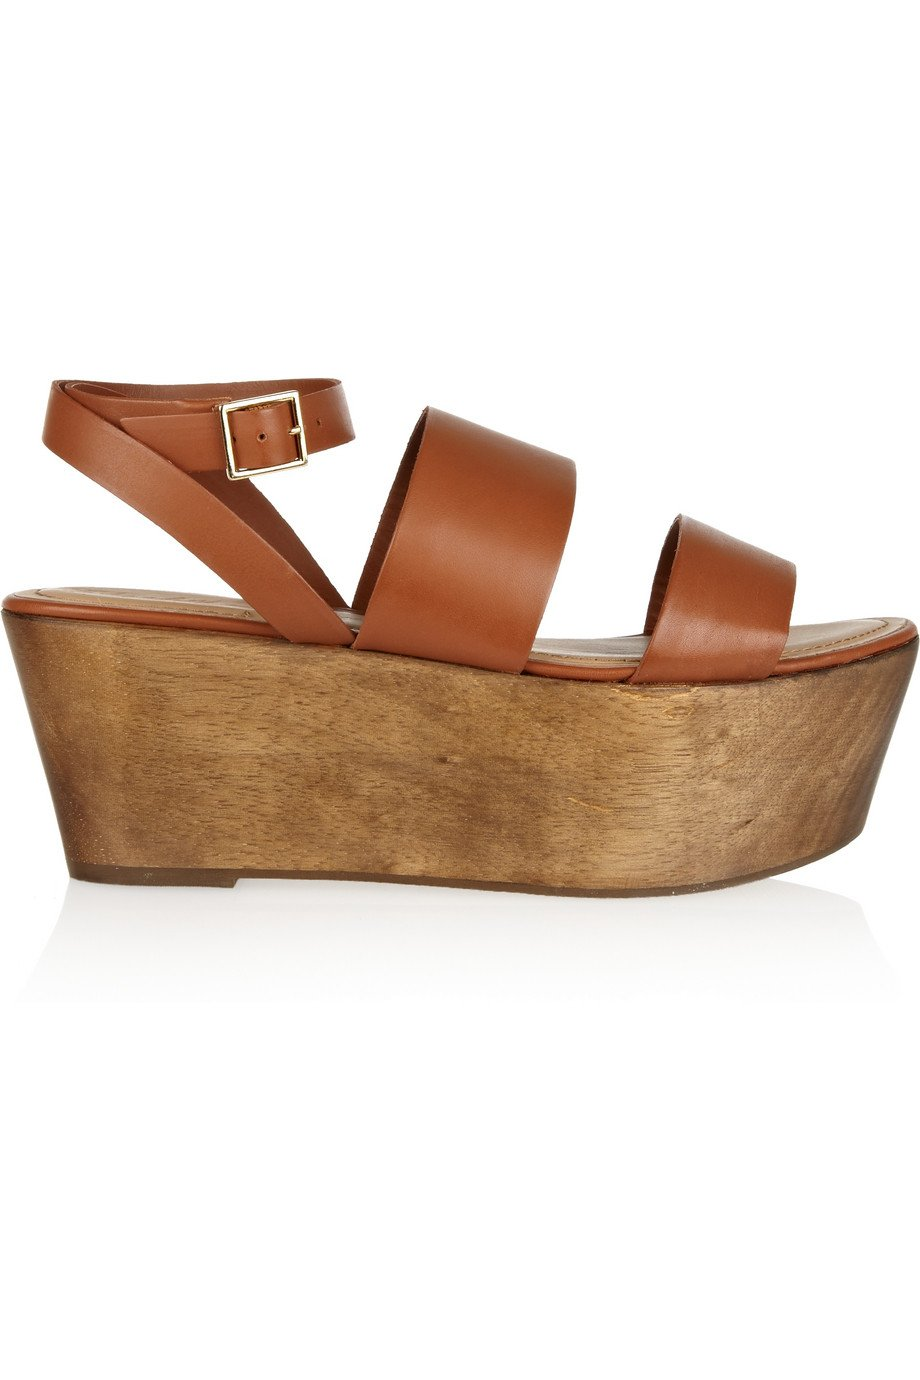 7070bf891 Lyst - Elizabeth and James Bax Leather and Wood Platform Sandals in ...